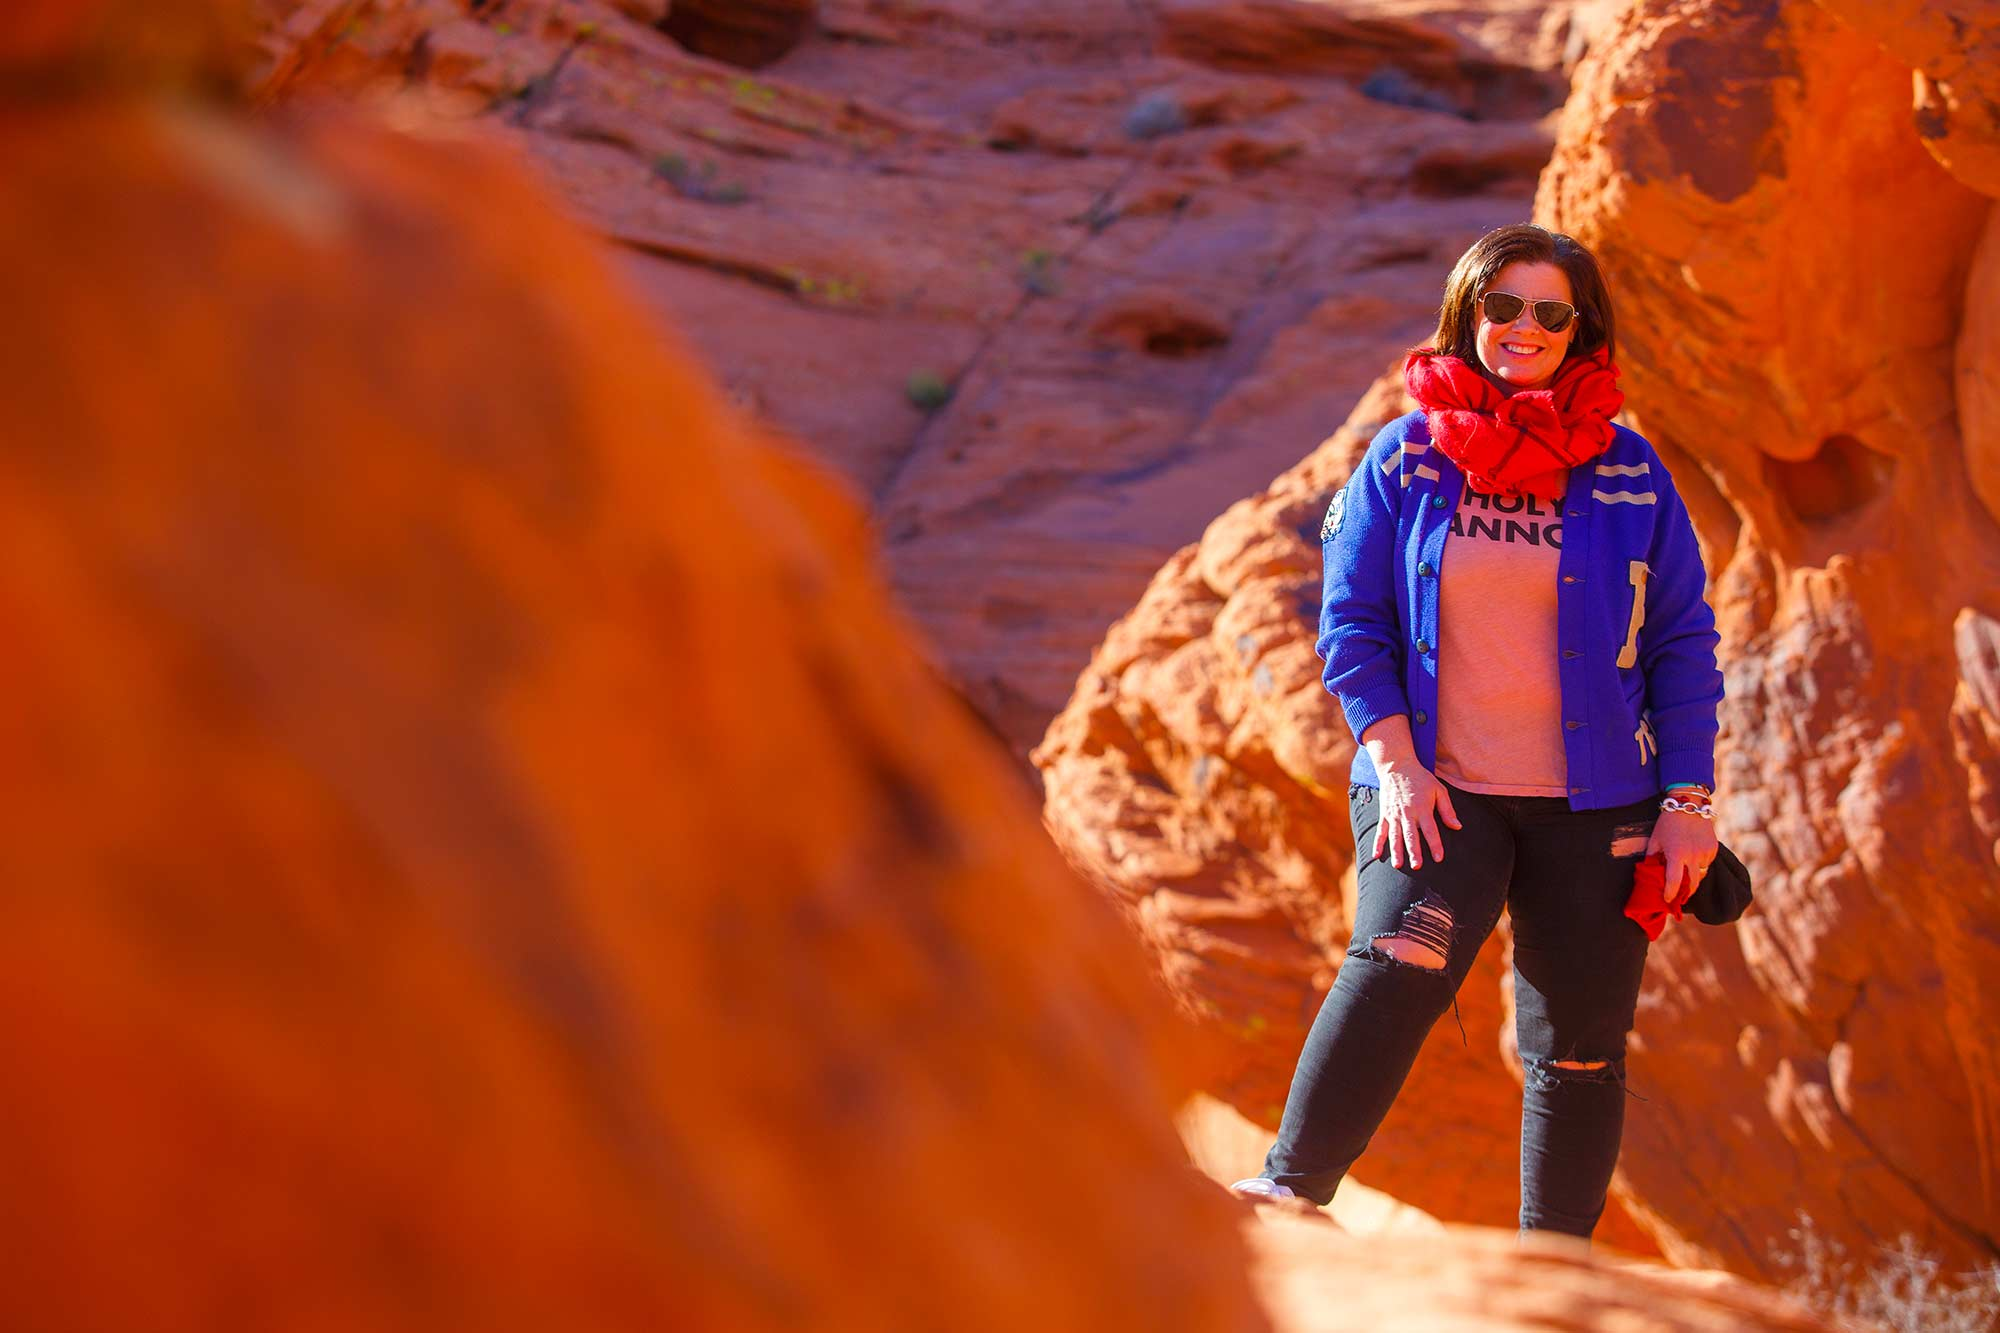 Valley of Fire State Park, NV - 1/11